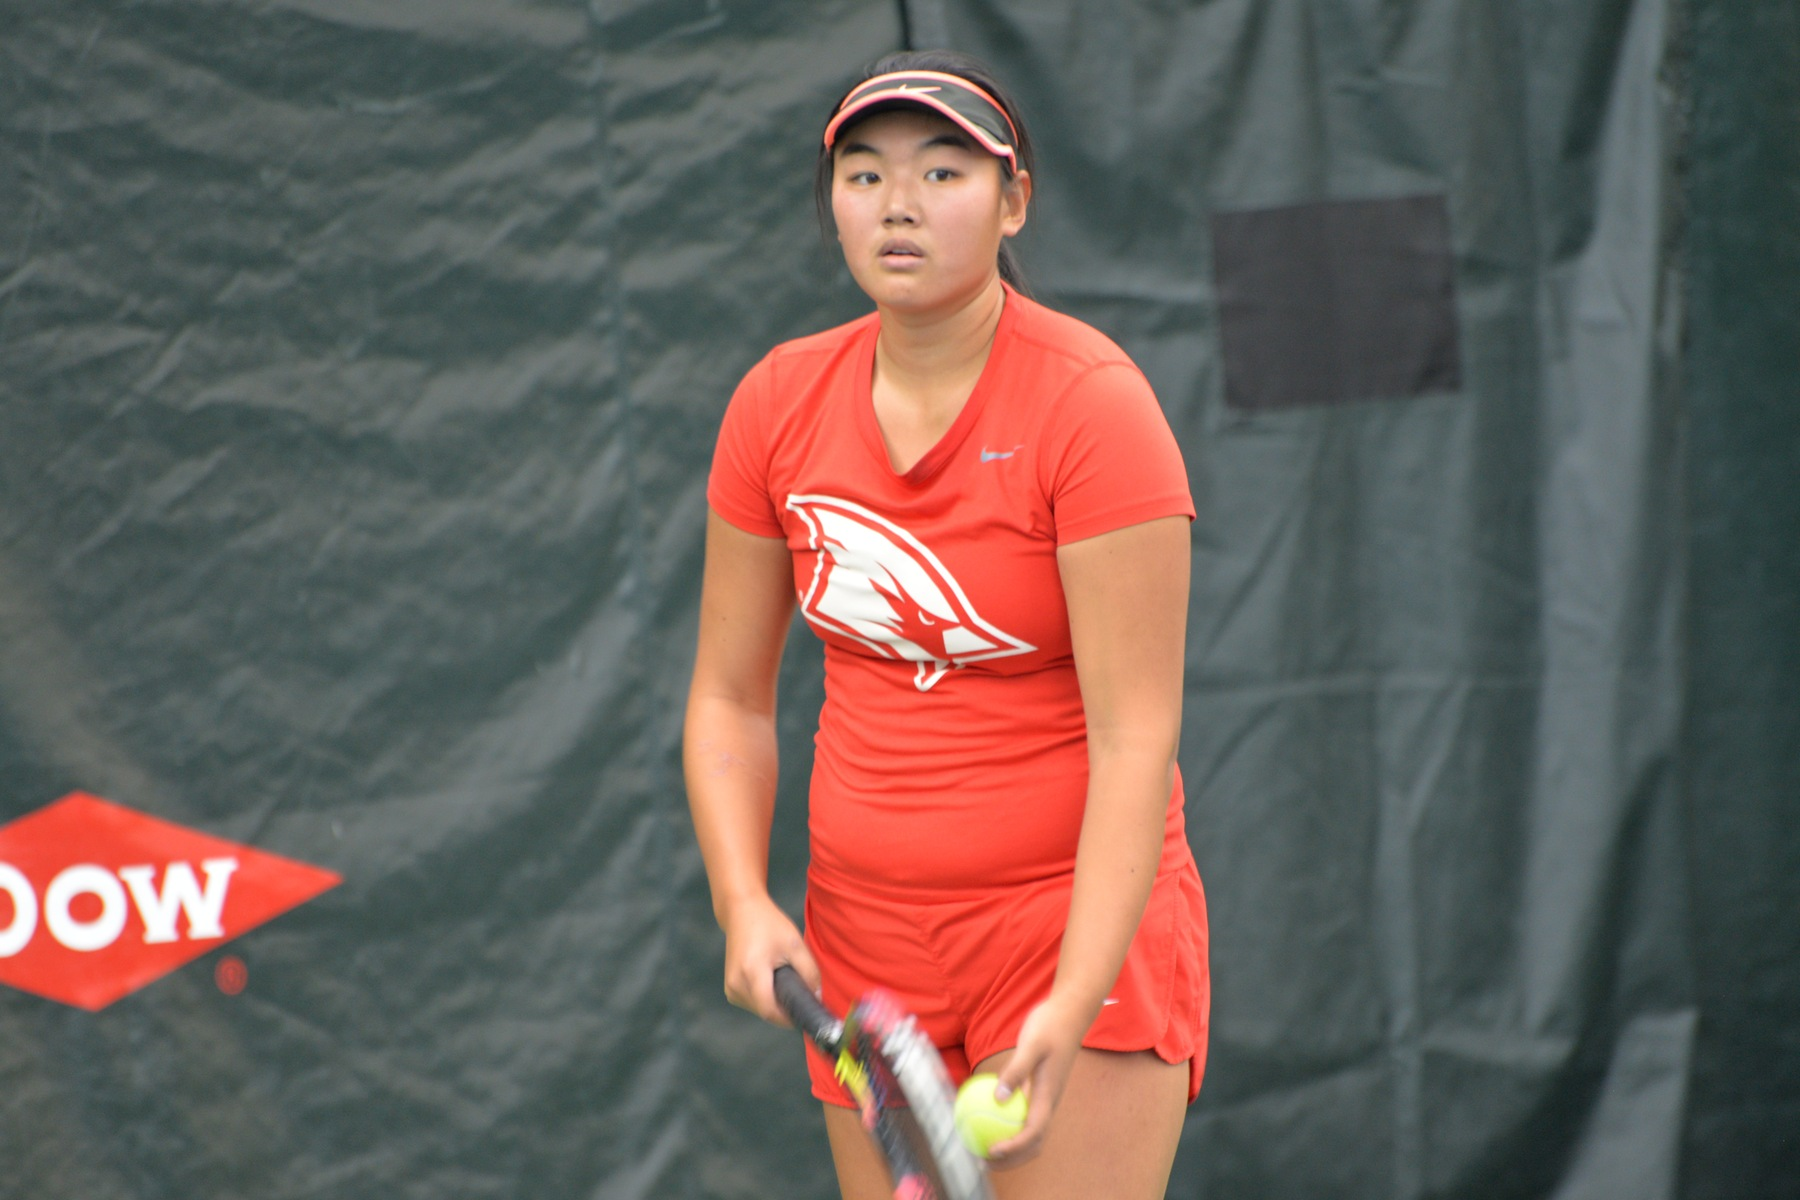 Cardinals fall in match versus Oakland, 7-0